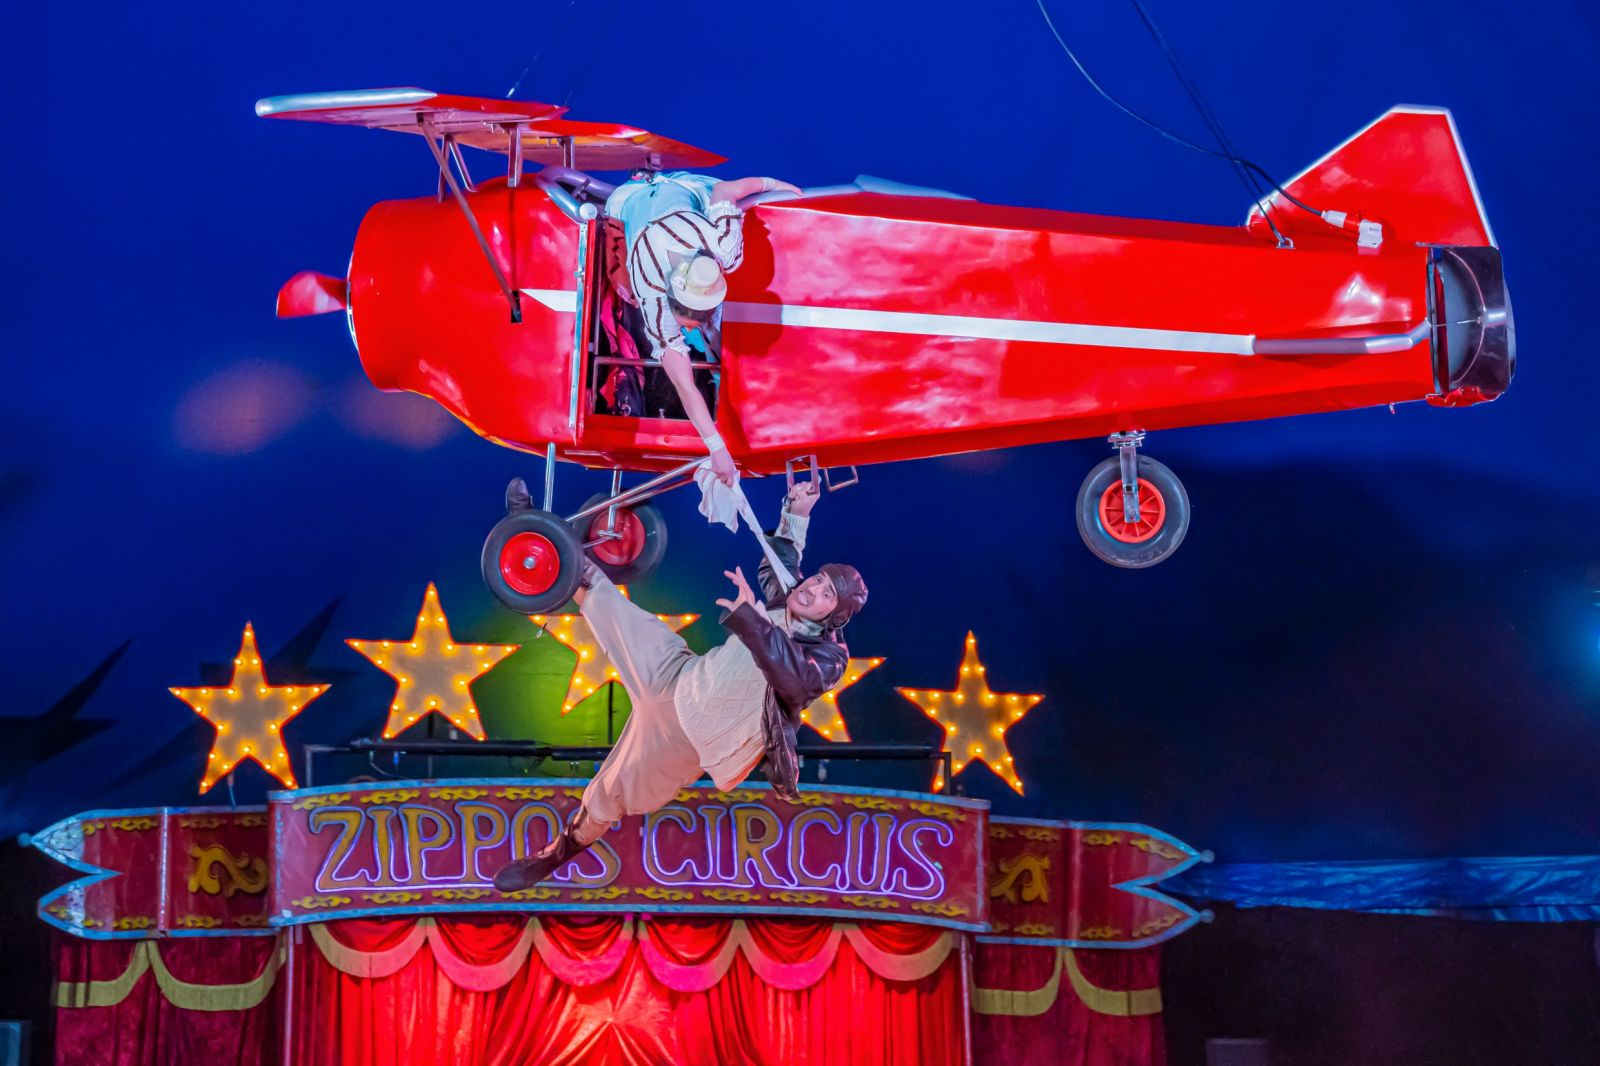 Amazing Flying Machine Duo Garcia (1) Photographer credit: Piet-Hein Out